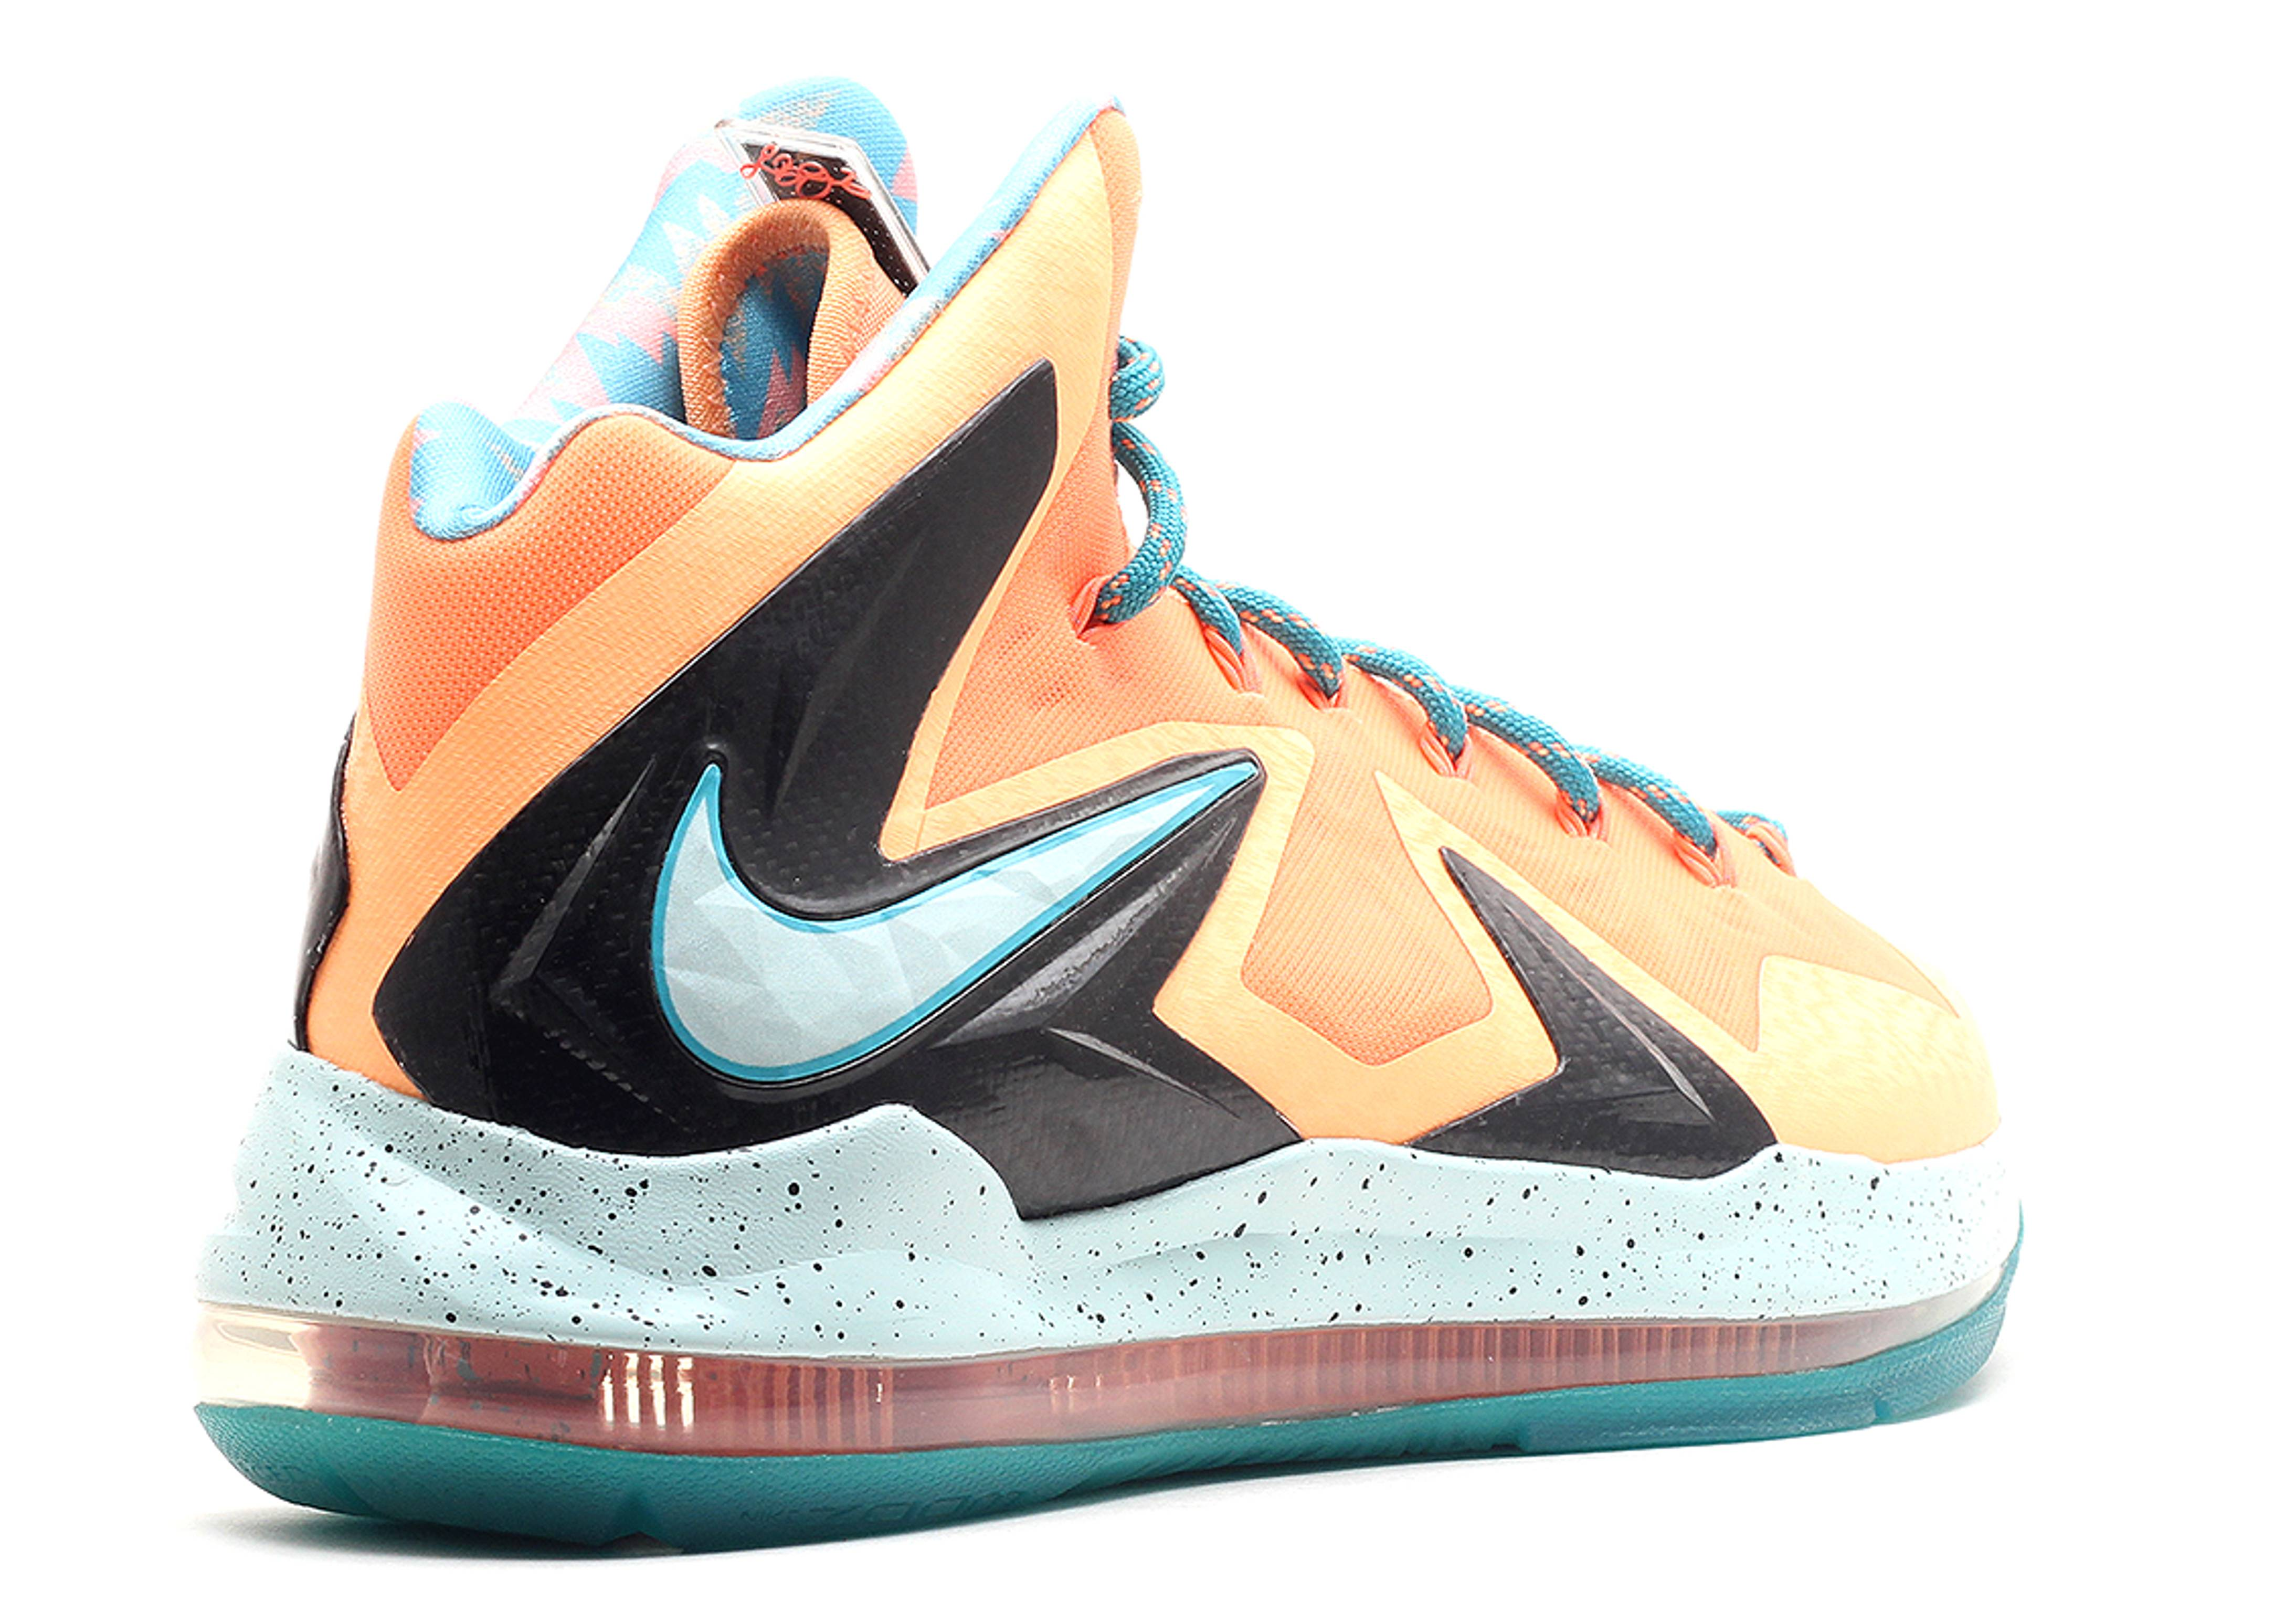 """Lebron 10 Elite Pe """"peach Jam""""  Nike  Mnbskt163409391. Drinking Signs Of Stroke. Assembly Point Signs. Aeruginosa Isolates Signs. Bathroom Signs. Sweet Signs Of Stroke. Melonheadz Signs. Boy Room Signs Of Stroke. Keep Calm And Signs Of Stroke"""